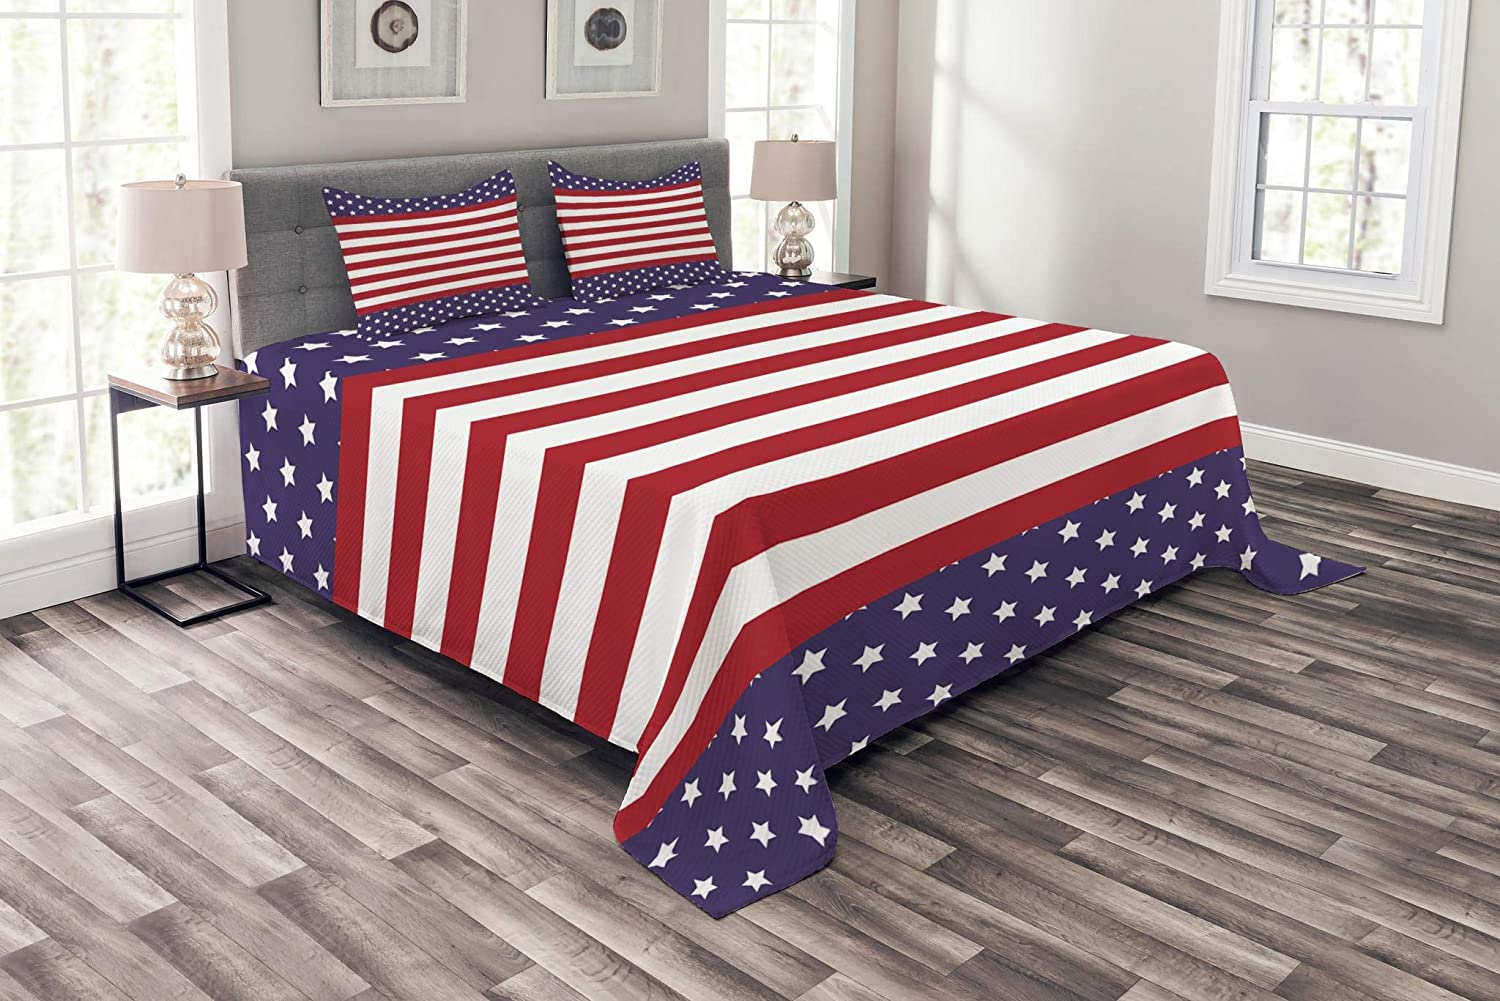 Lunarable Striped Bedspread, American Flag with Stars Stripes USA Royalty Emblem Nation Country Print, Decorative Quilted 3 Piece Coverlet Set with 2 Pillow Shams, King Size, Violet White